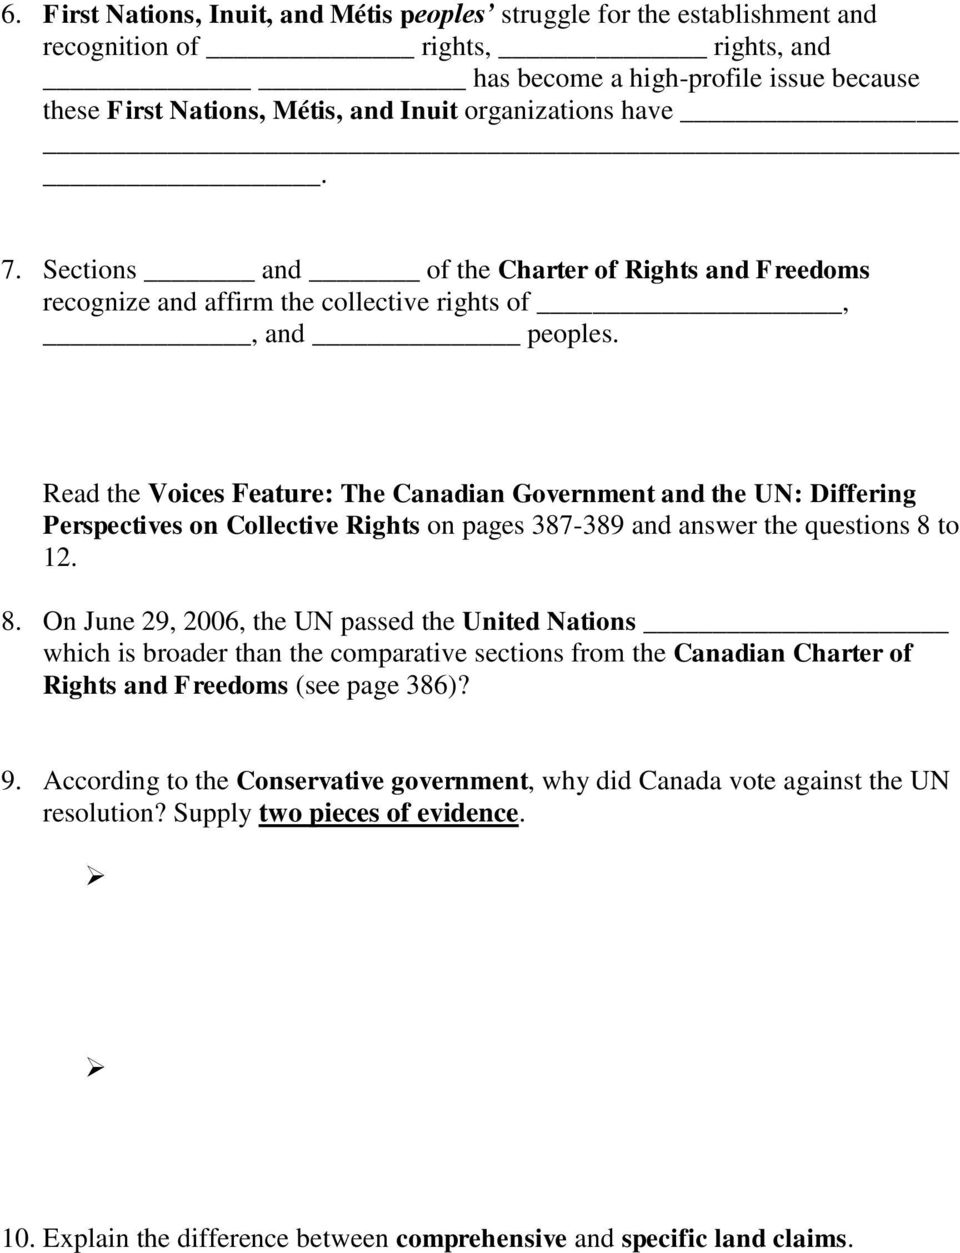 Read the Voices Feature: The Canadian Government and the UN: Differing Perspectives on Collective Rights on pages 387-389 and answer the questions 8